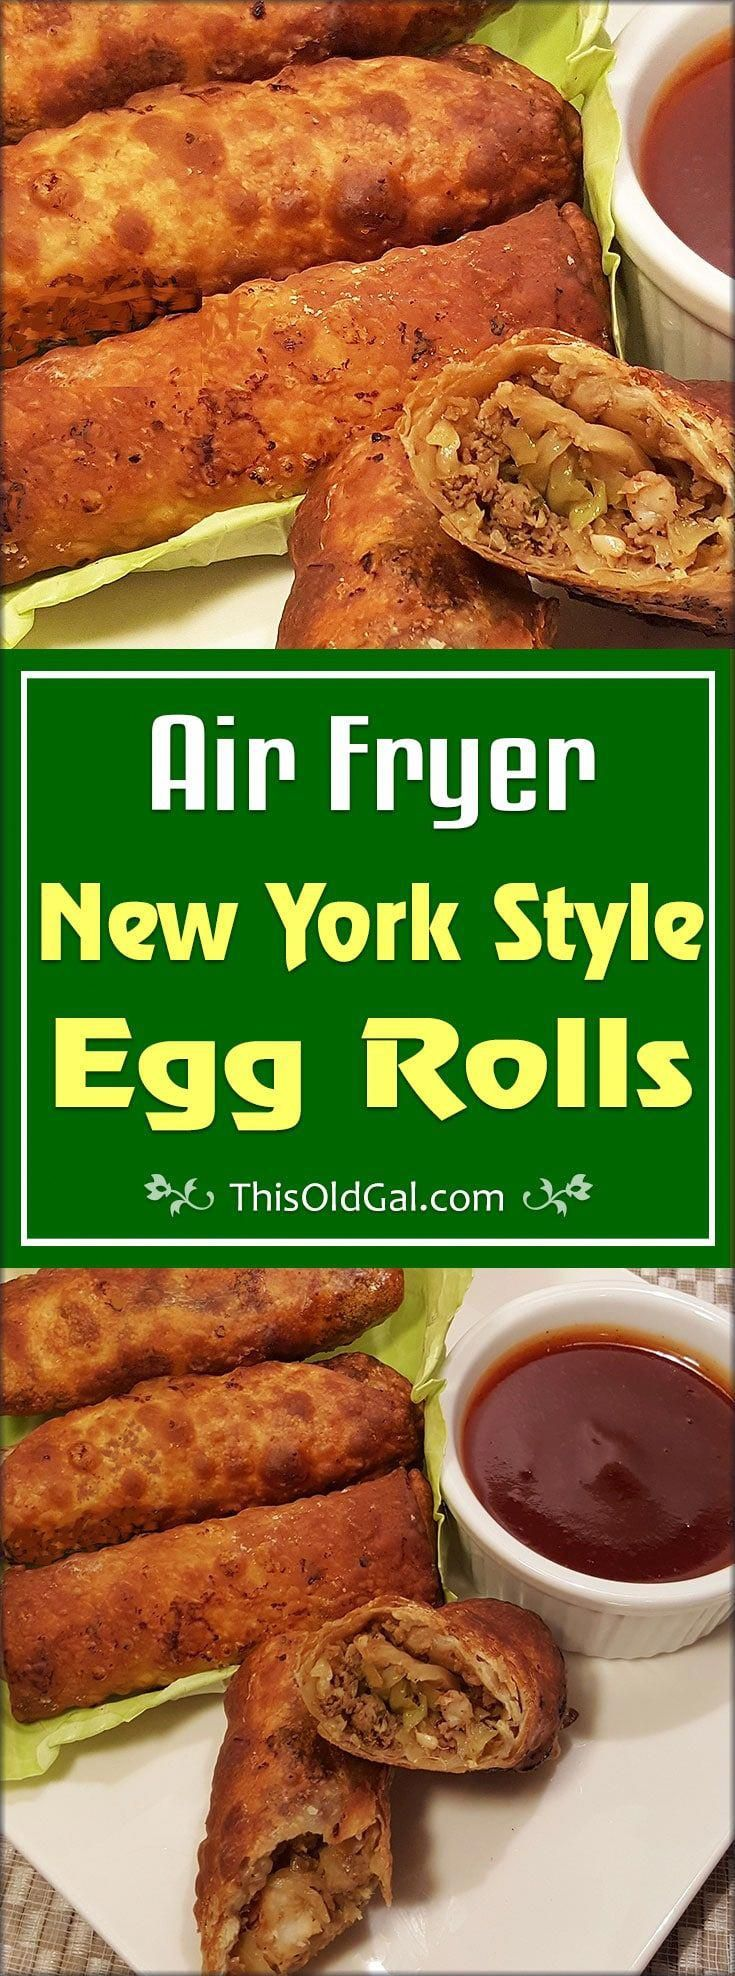 airfryer tips and guide AirFryers in 2020 Air fryer